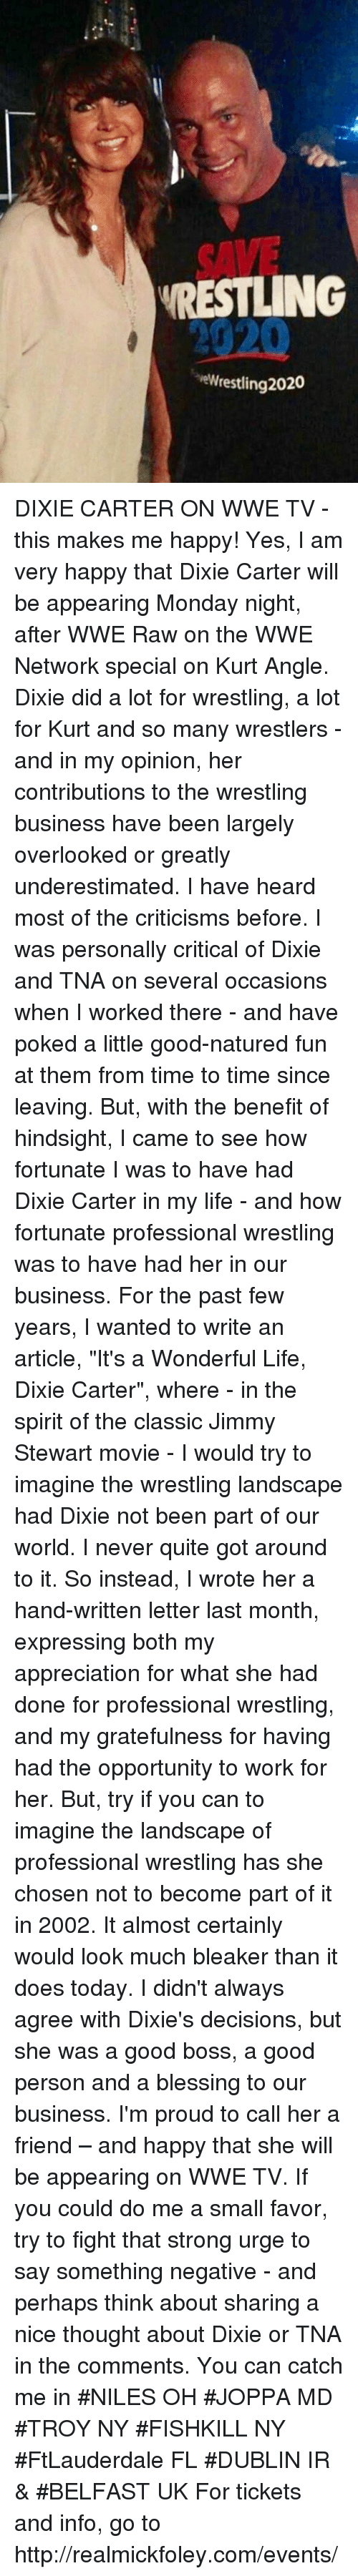 """Wwe Raw: SAVE  RESTLING  2020  eWrestling 2020 DIXIE CARTER ON WWE TV - this makes me happy!  Yes, I am very happy that Dixie Carter will be appearing Monday night, after WWE Raw on the WWE Network special on Kurt Angle. Dixie did a lot for wrestling, a lot for Kurt and so many wrestlers - and in my opinion, her contributions to the wrestling business have been largely overlooked or greatly underestimated.   I have heard  most of the criticisms before. I was personally critical of Dixie and TNA on several occasions when I worked there - and have poked a little good-natured fun at them from time to time since leaving.  But, with the benefit of hindsight, I came to see how fortunate I was to have had Dixie Carter in my life -  and how fortunate professional wrestling was to have had her in our business.    For the past few years, I  wanted to write an article, """"It's a Wonderful Life, Dixie Carter"""",  where - in the spirit of the classic Jimmy Stewart movie - I would try to imagine the wrestling landscape had Dixie not been part of our world.  I never quite got around to it.  So instead, I wrote her a hand-written letter last month,  expressing both my appreciation for what she had done for professional wrestling, and my gratefulness for having had the opportunity to work for her.  But, try if you can to imagine the landscape of professional wrestling has she chosen not to become part of it in 2002. It almost certainly  would look much bleaker than it does today. I didn't always agree with Dixie's decisions, but she was a good boss, a good person and a blessing to our business. I'm  proud to call her a friend – and happy that she will be appearing on WWE TV.  If you could do me a small favor, try to fight that strong urge to say something negative - and perhaps think about sharing a nice thought about Dixie or TNA in the comments.   You can catch me in #NILES OH #JOPPA MD #TROY NY #FISHKILL NY #FtLauderdale FL #DUBLIN IR & #BELFAST UK For tickets and info, go to http://"""